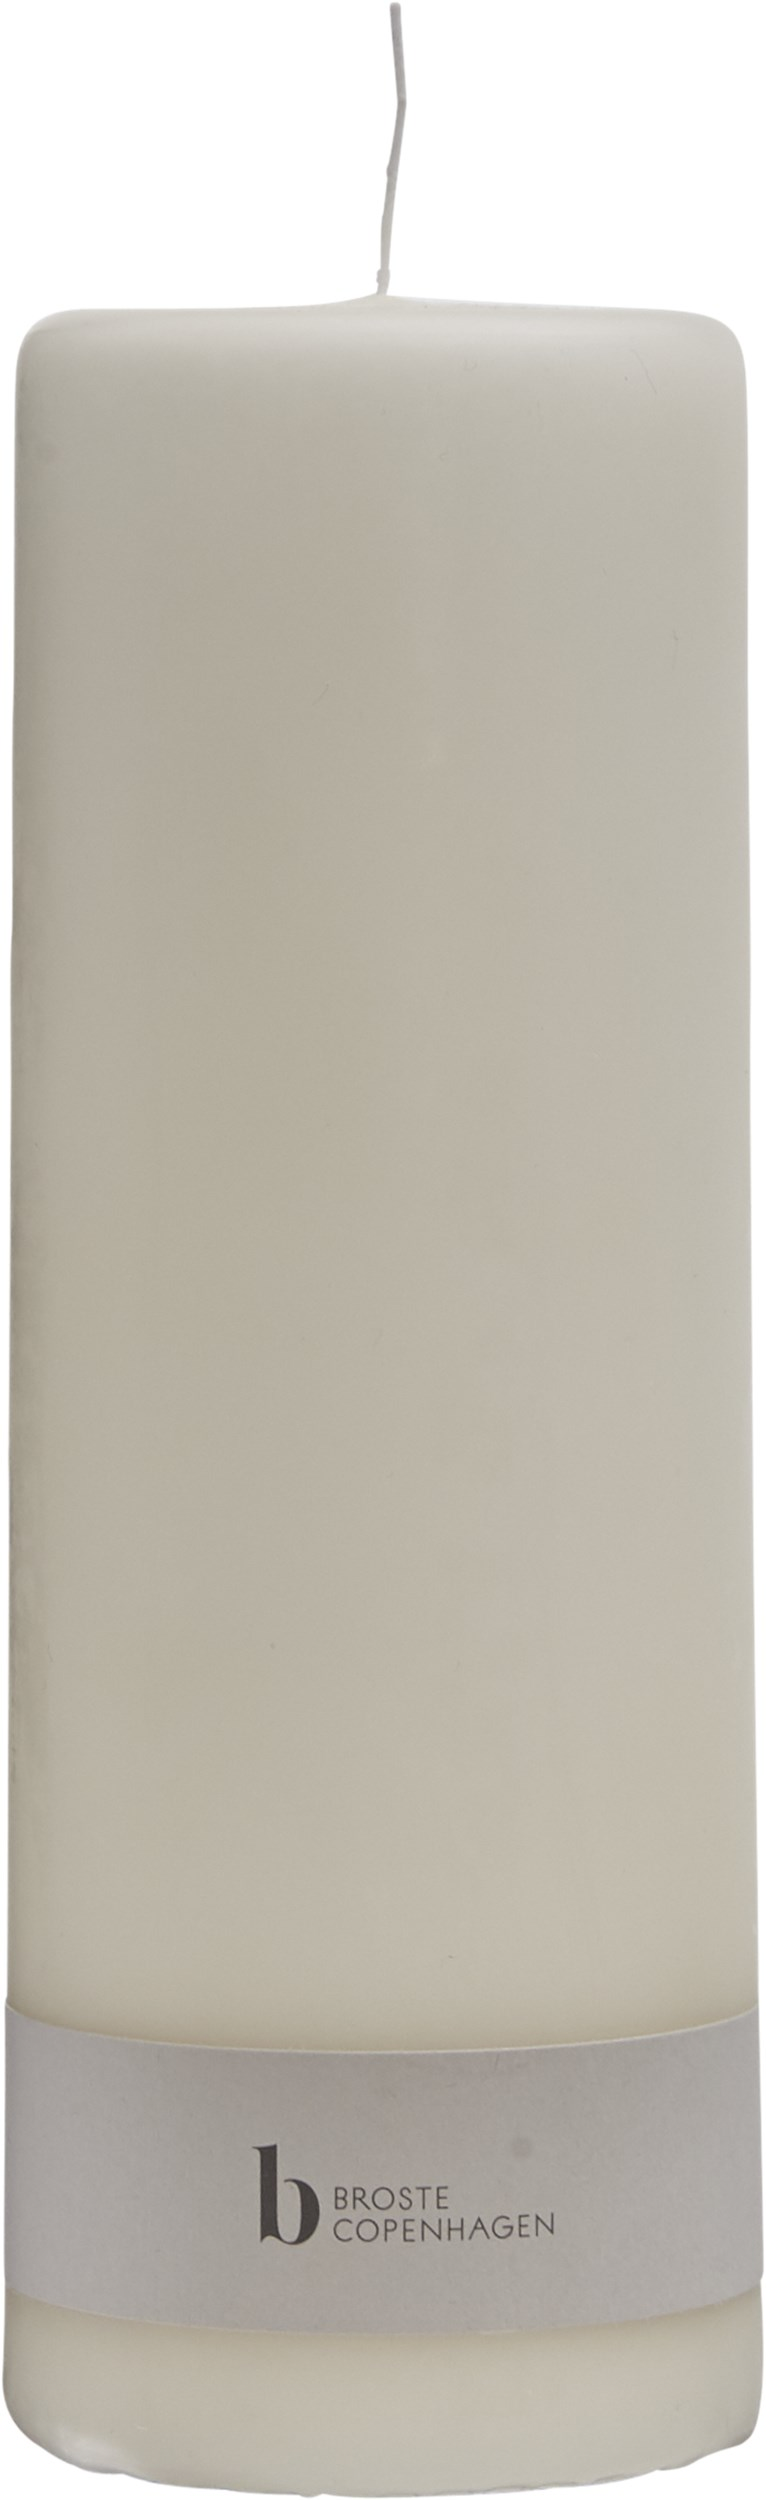 Candle Blockljus 20 x 7 cm - Off-white paraffin